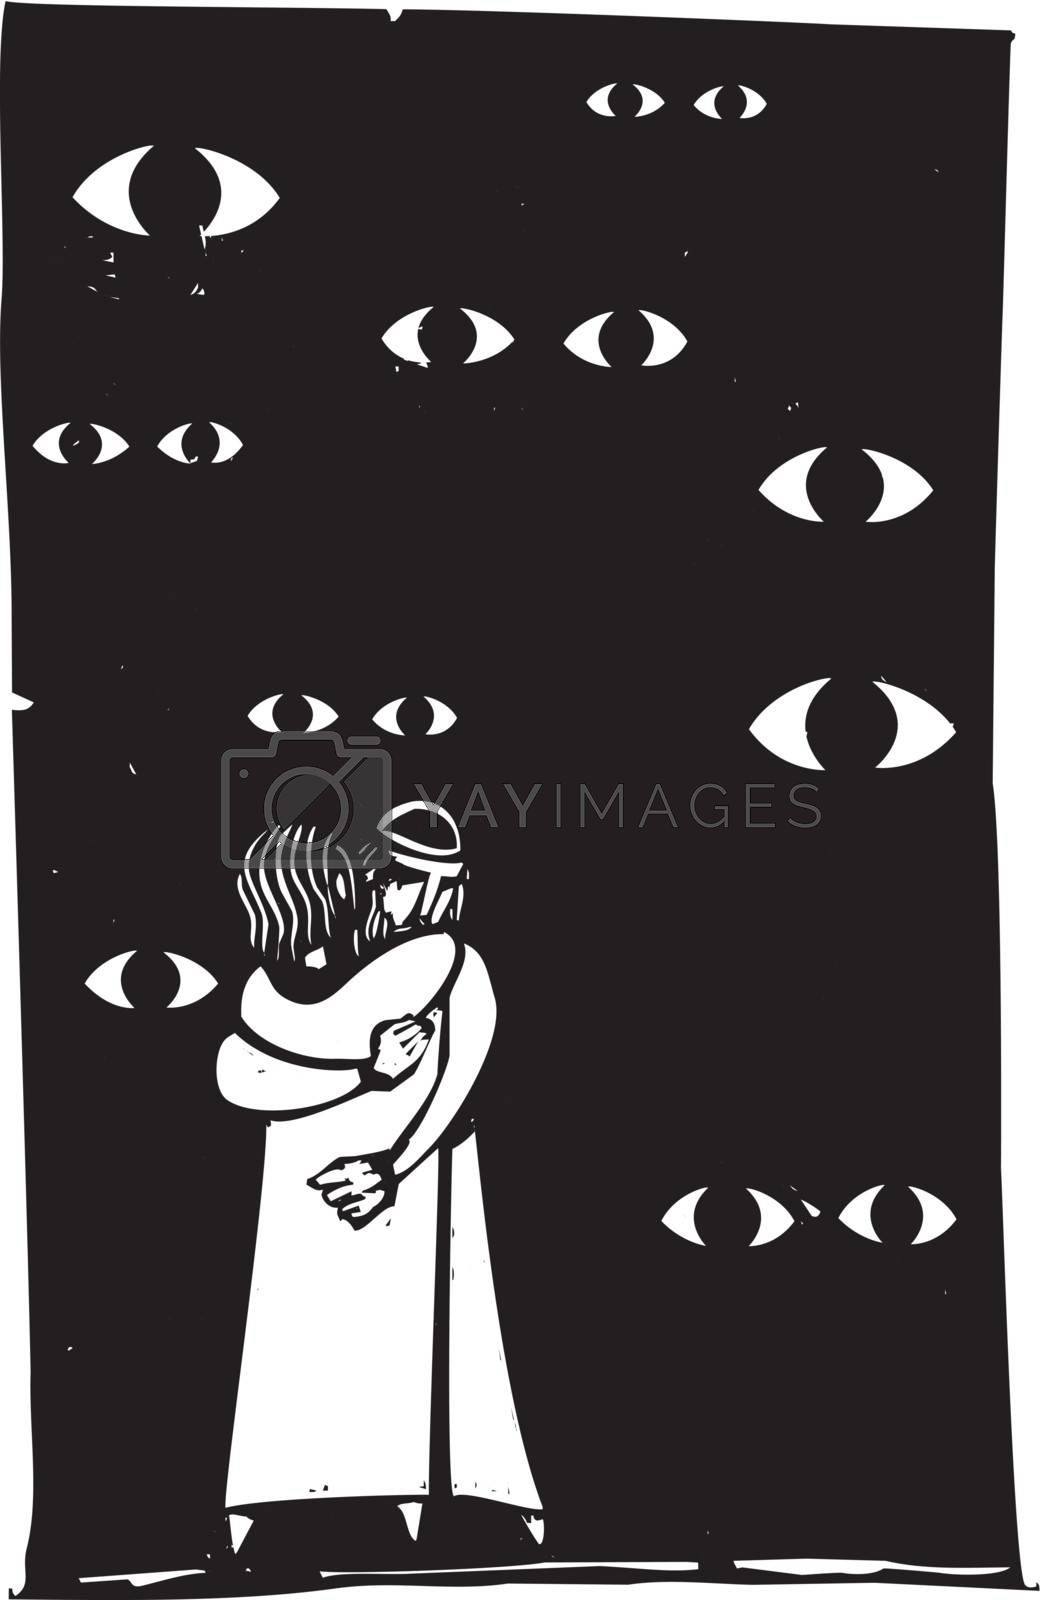 A middle eastern couple are watched embracing by many eyes.